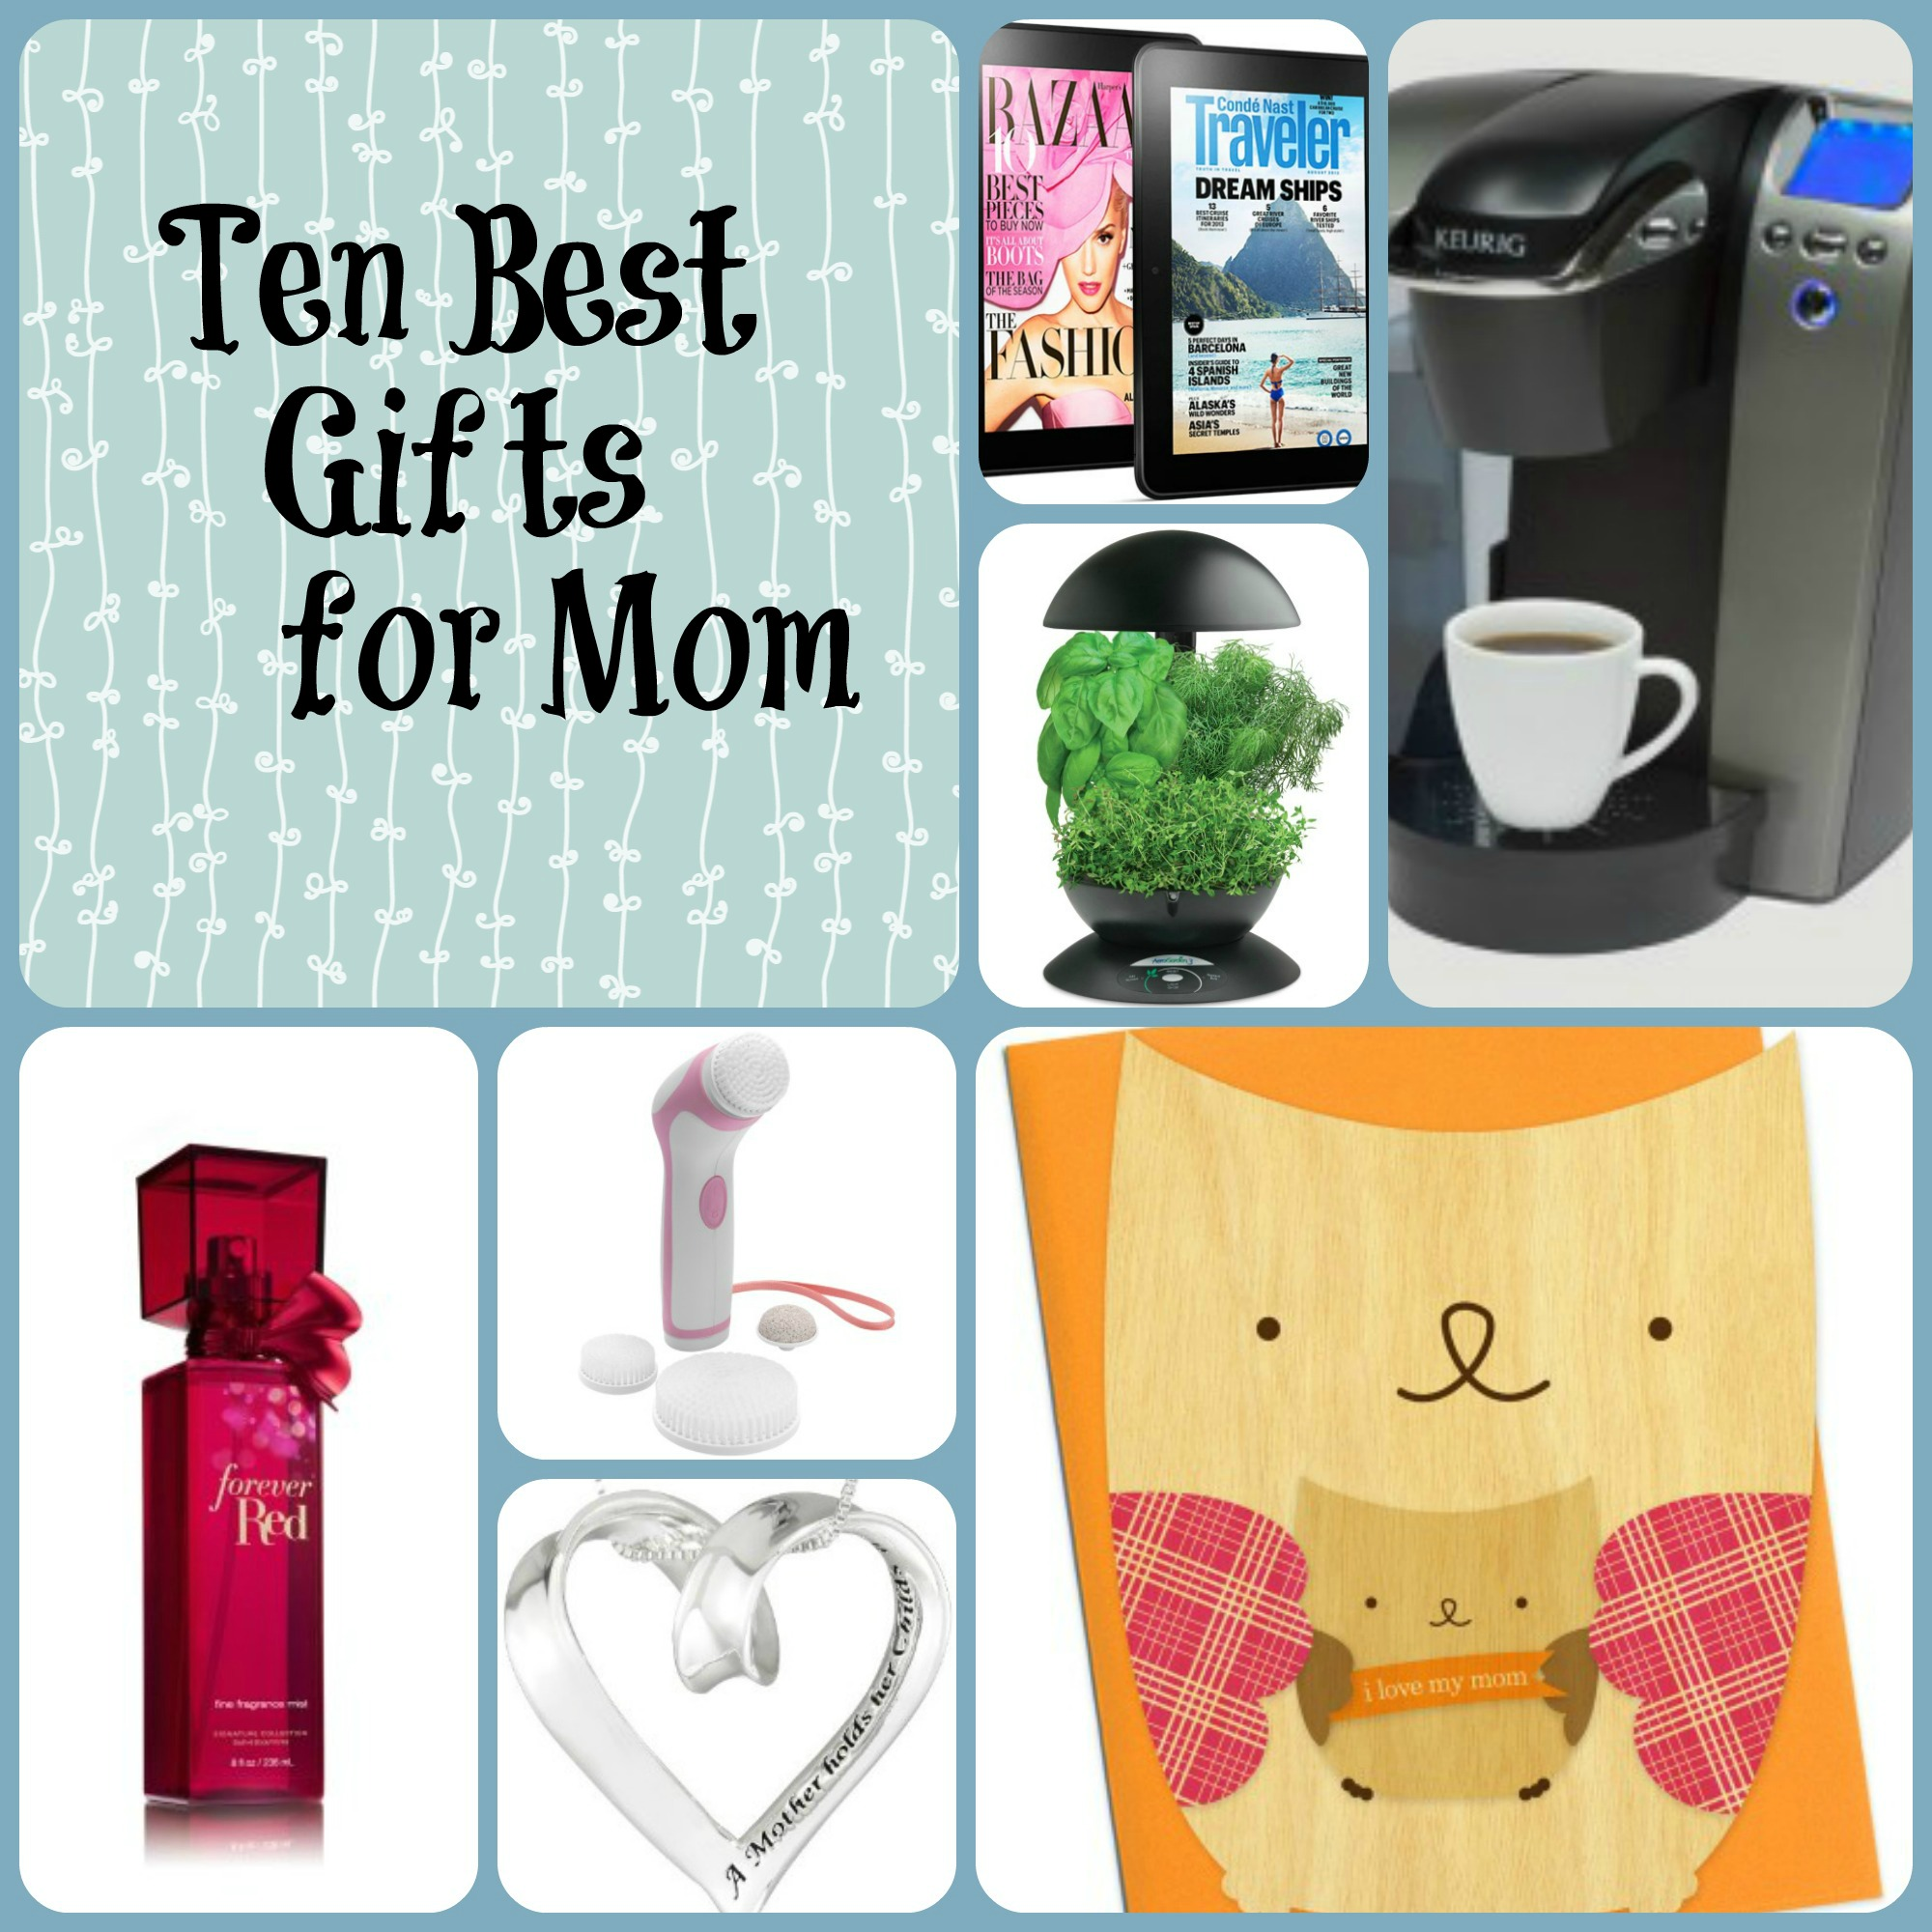 Ten best gifts for mom budget earth for Great present for mom